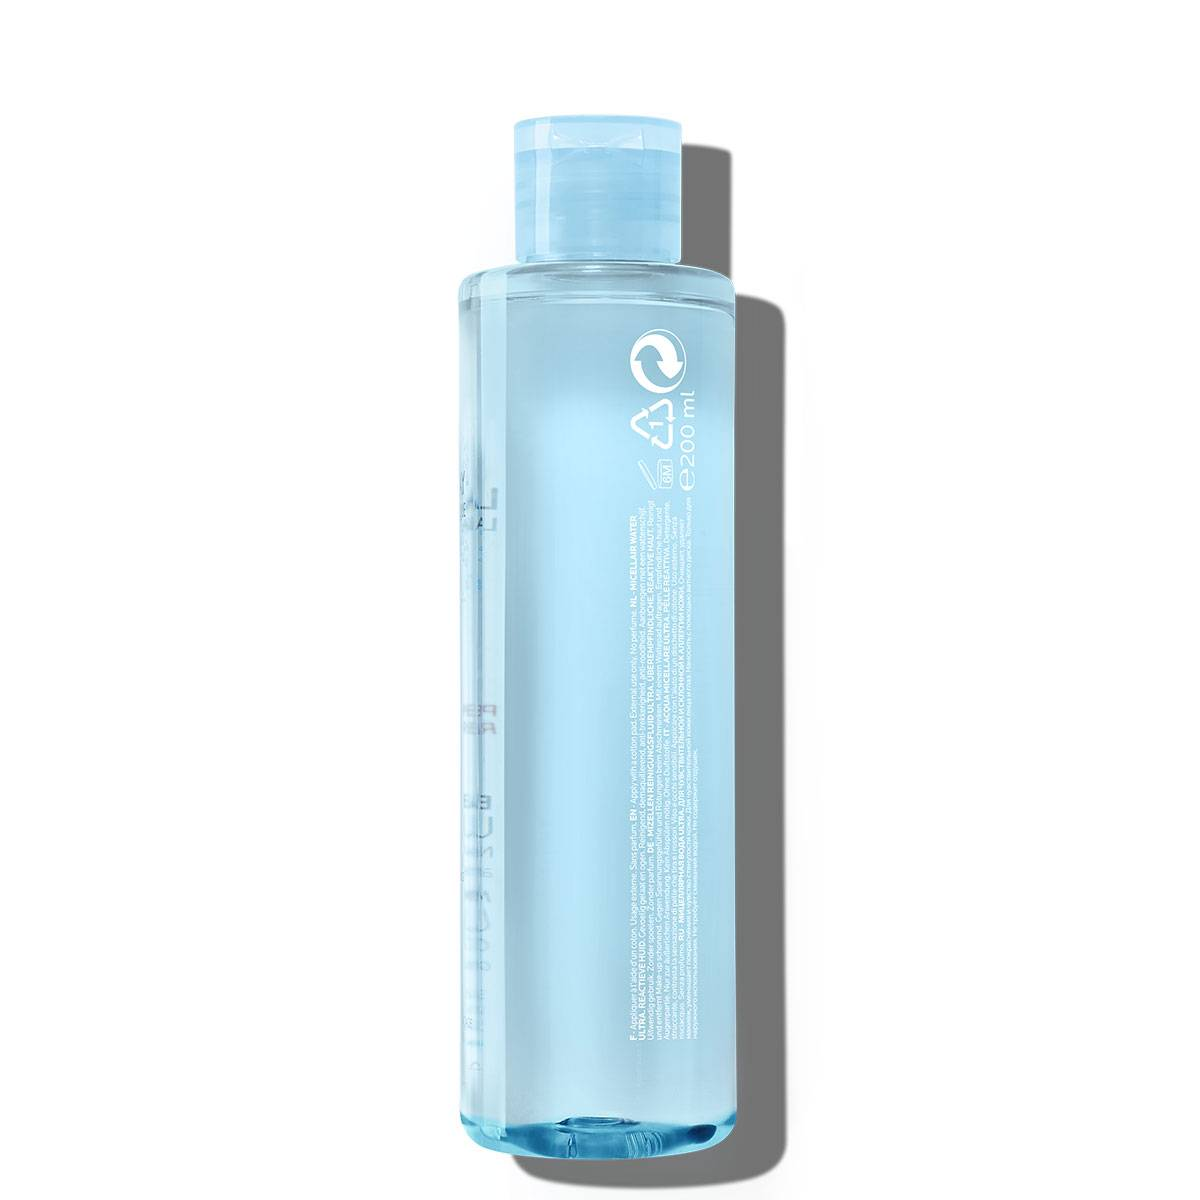 La Roche Posay ProductPage Face Cleanser Physiological Micellar Water